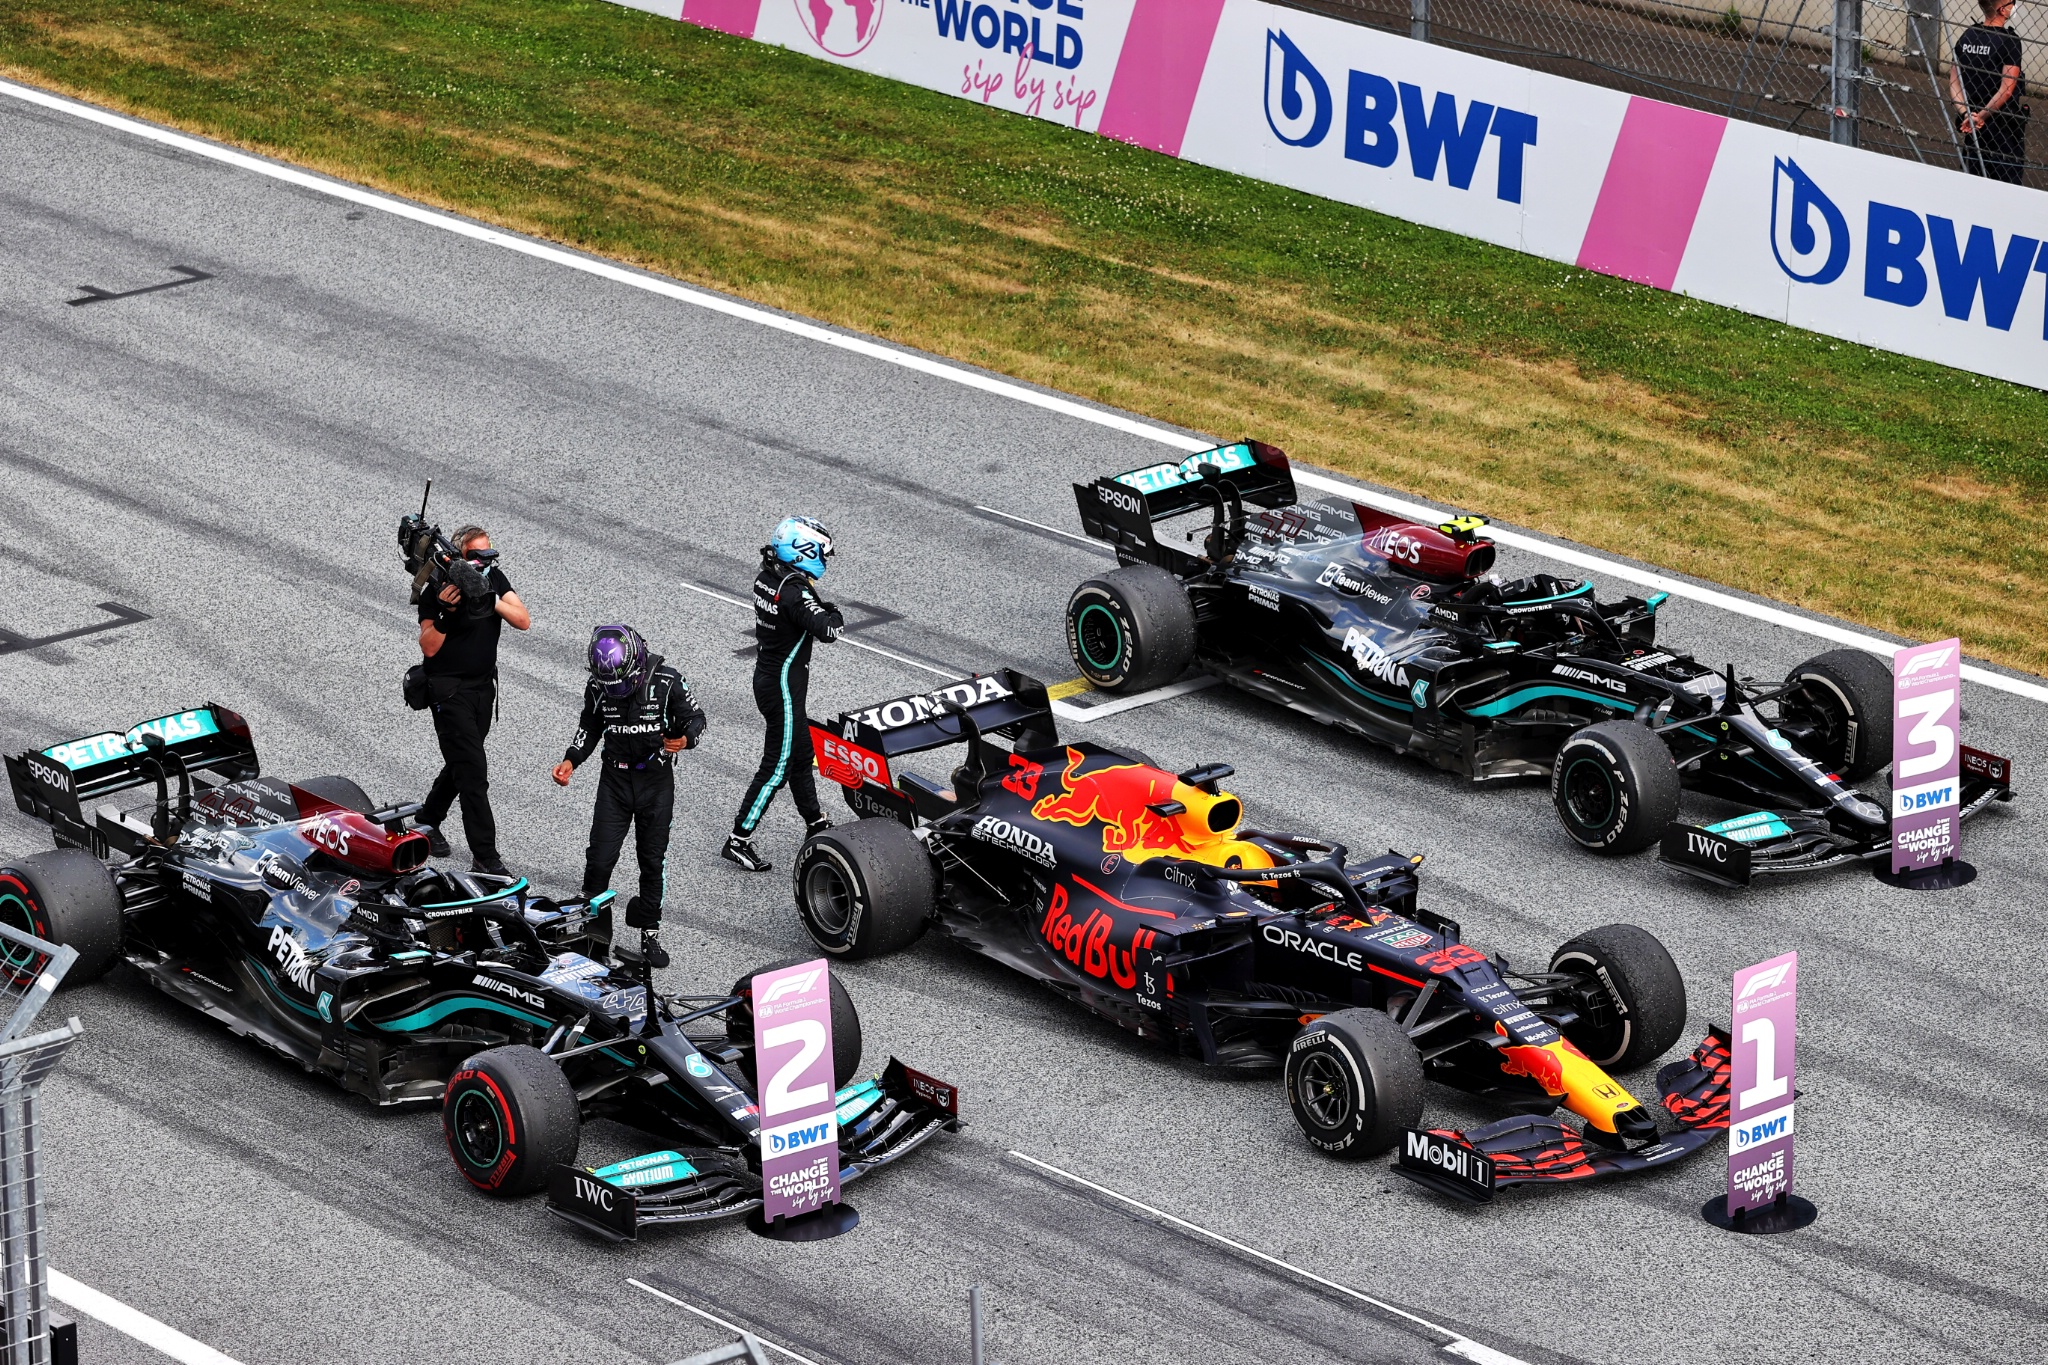 (L to R): Lewis Hamilton (GBR) Mercedes AMG F1 and Valtteri Bottas (FIN) Mercedes AMG F1 in parc ferme at the end of the race.